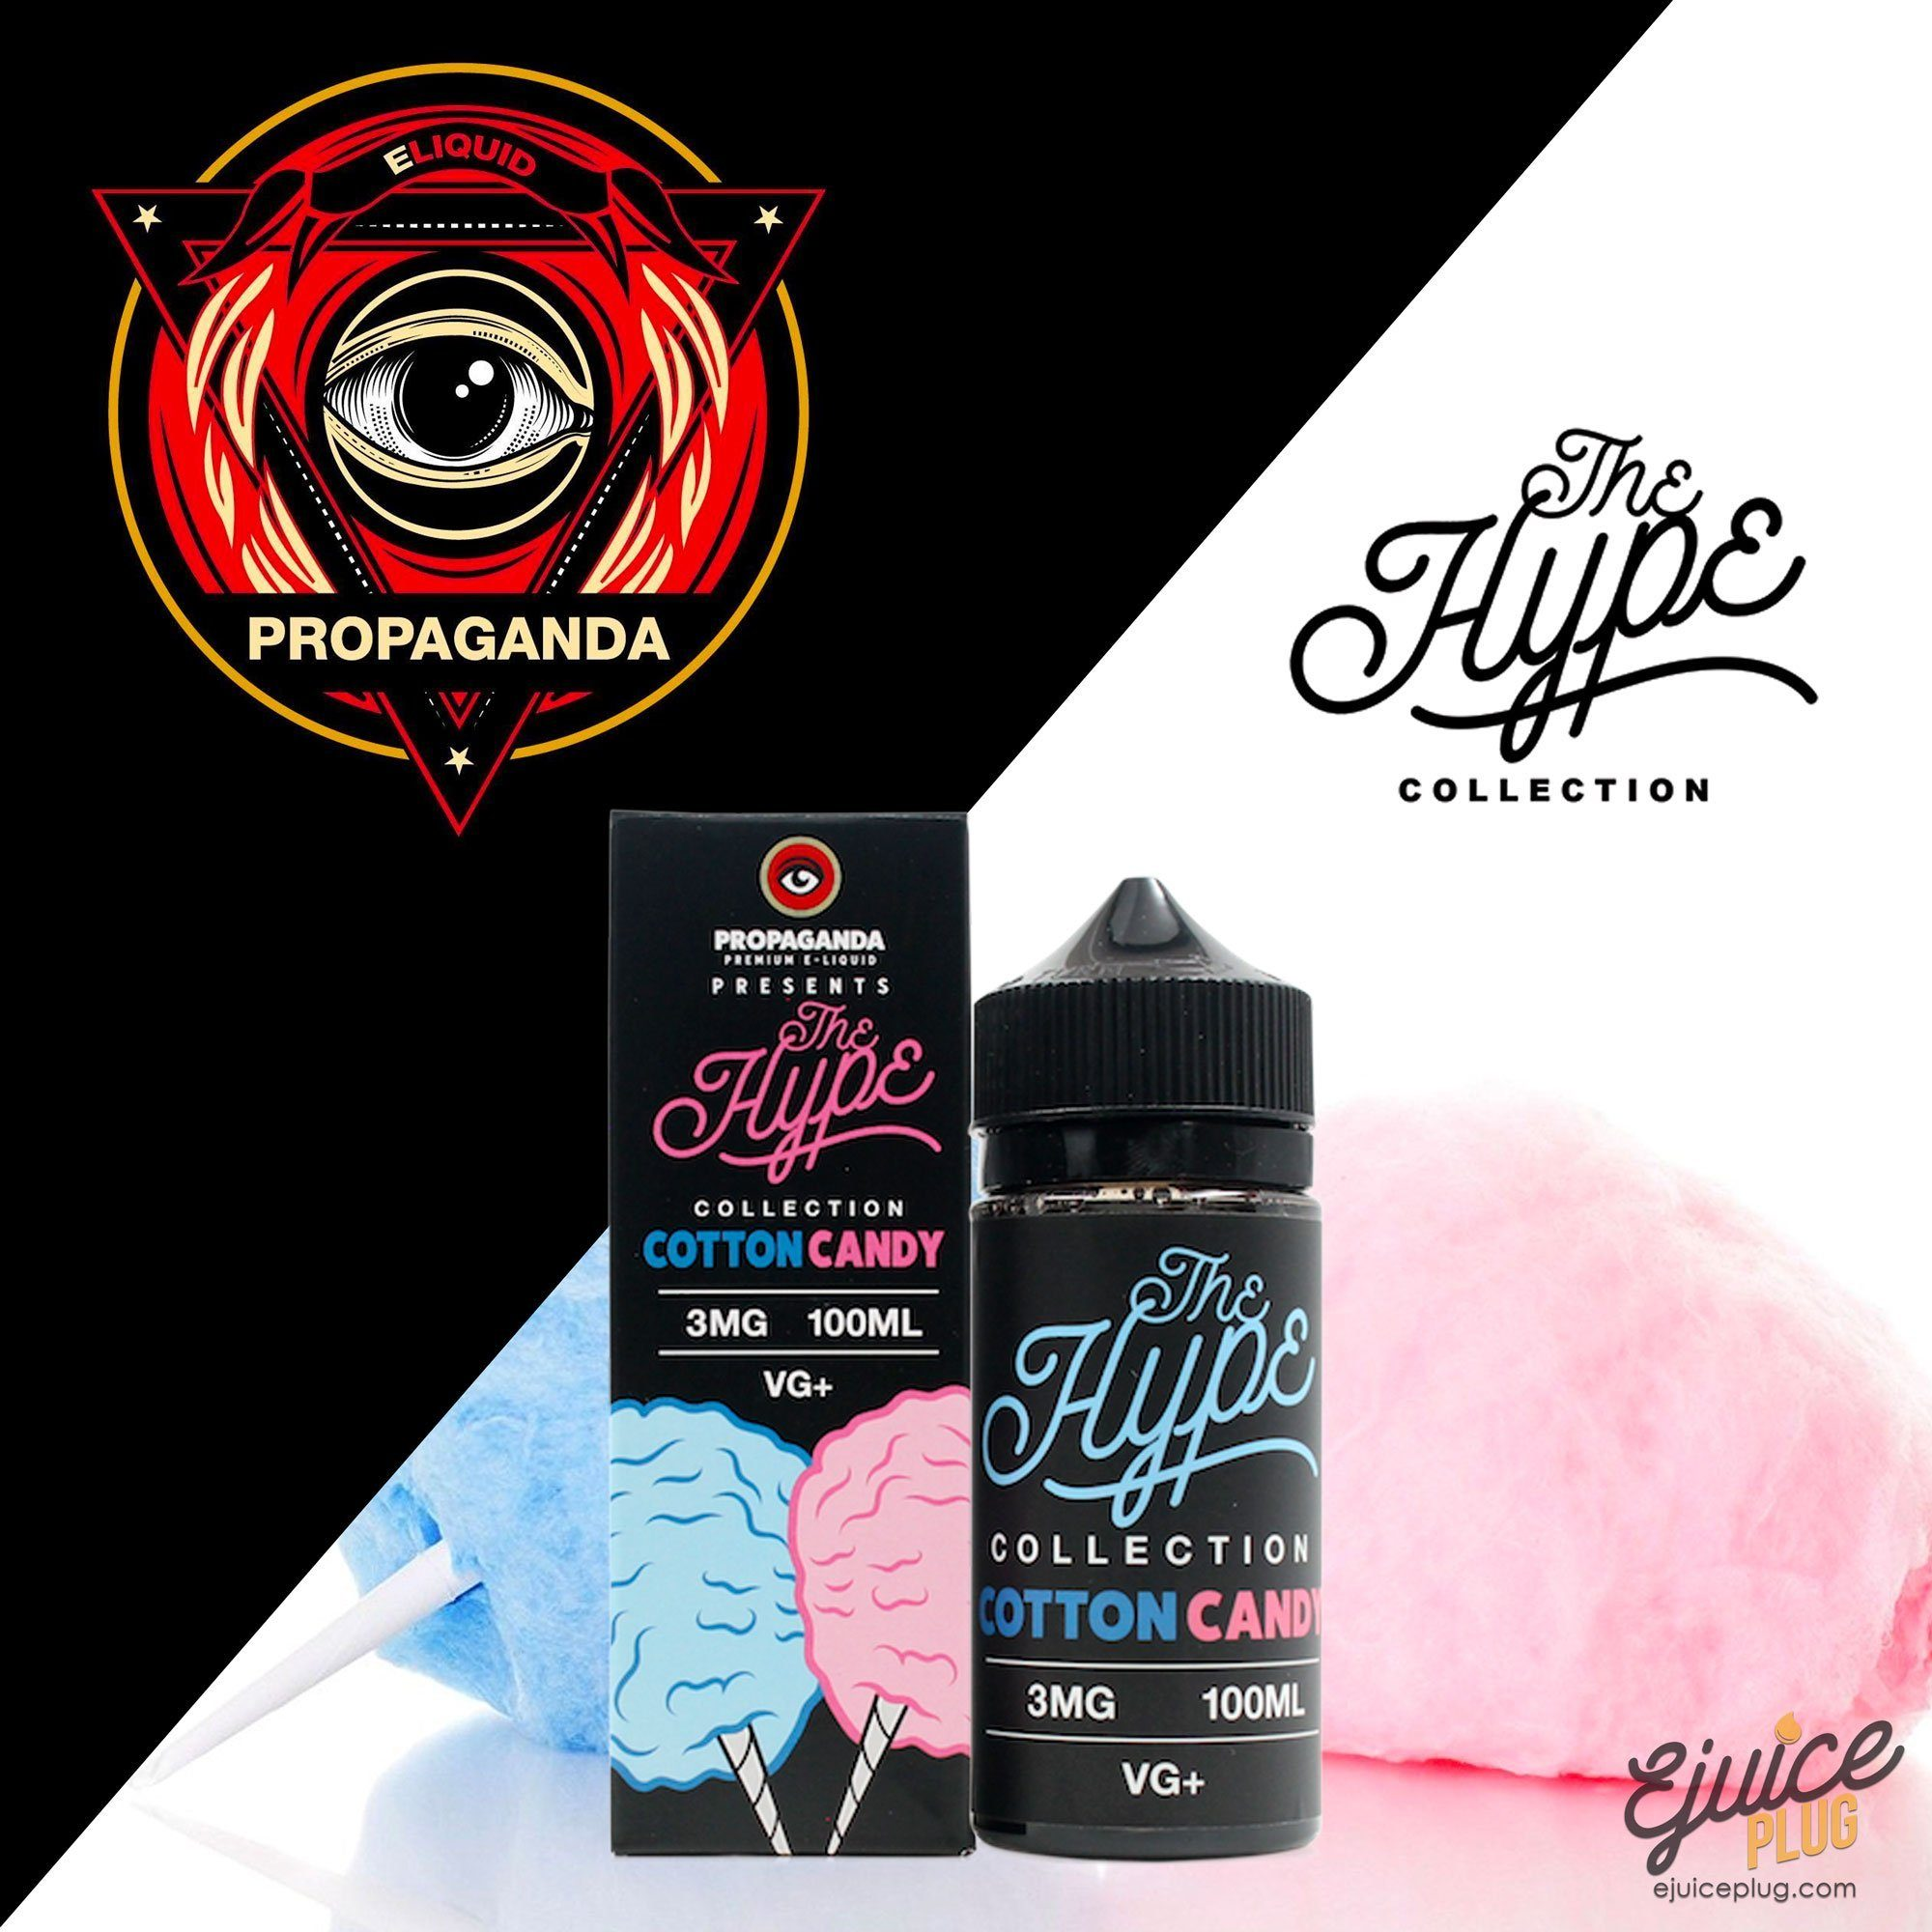 Propaganda E-Liquid,- Cotton Candy The Hype Collection by Propaganda E-Liquid - E-Juice Plug